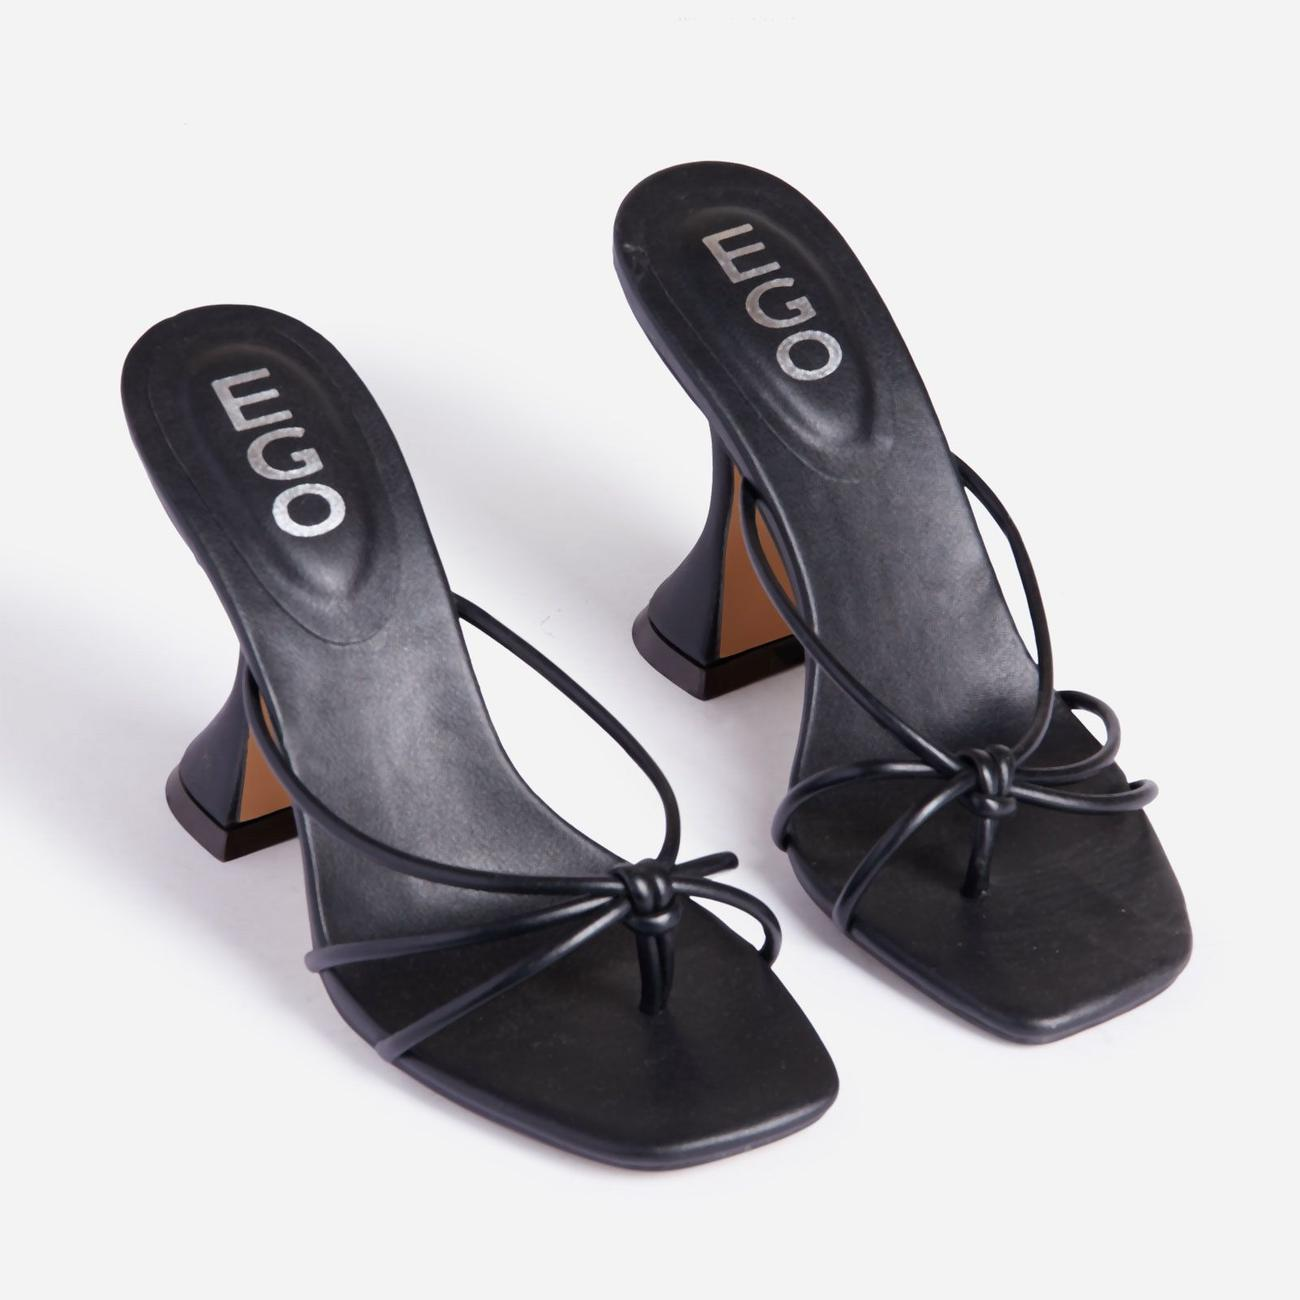 Trip Knot Detail Square Toe Pyramid Heel Mule In Black Faux Leather Image 2